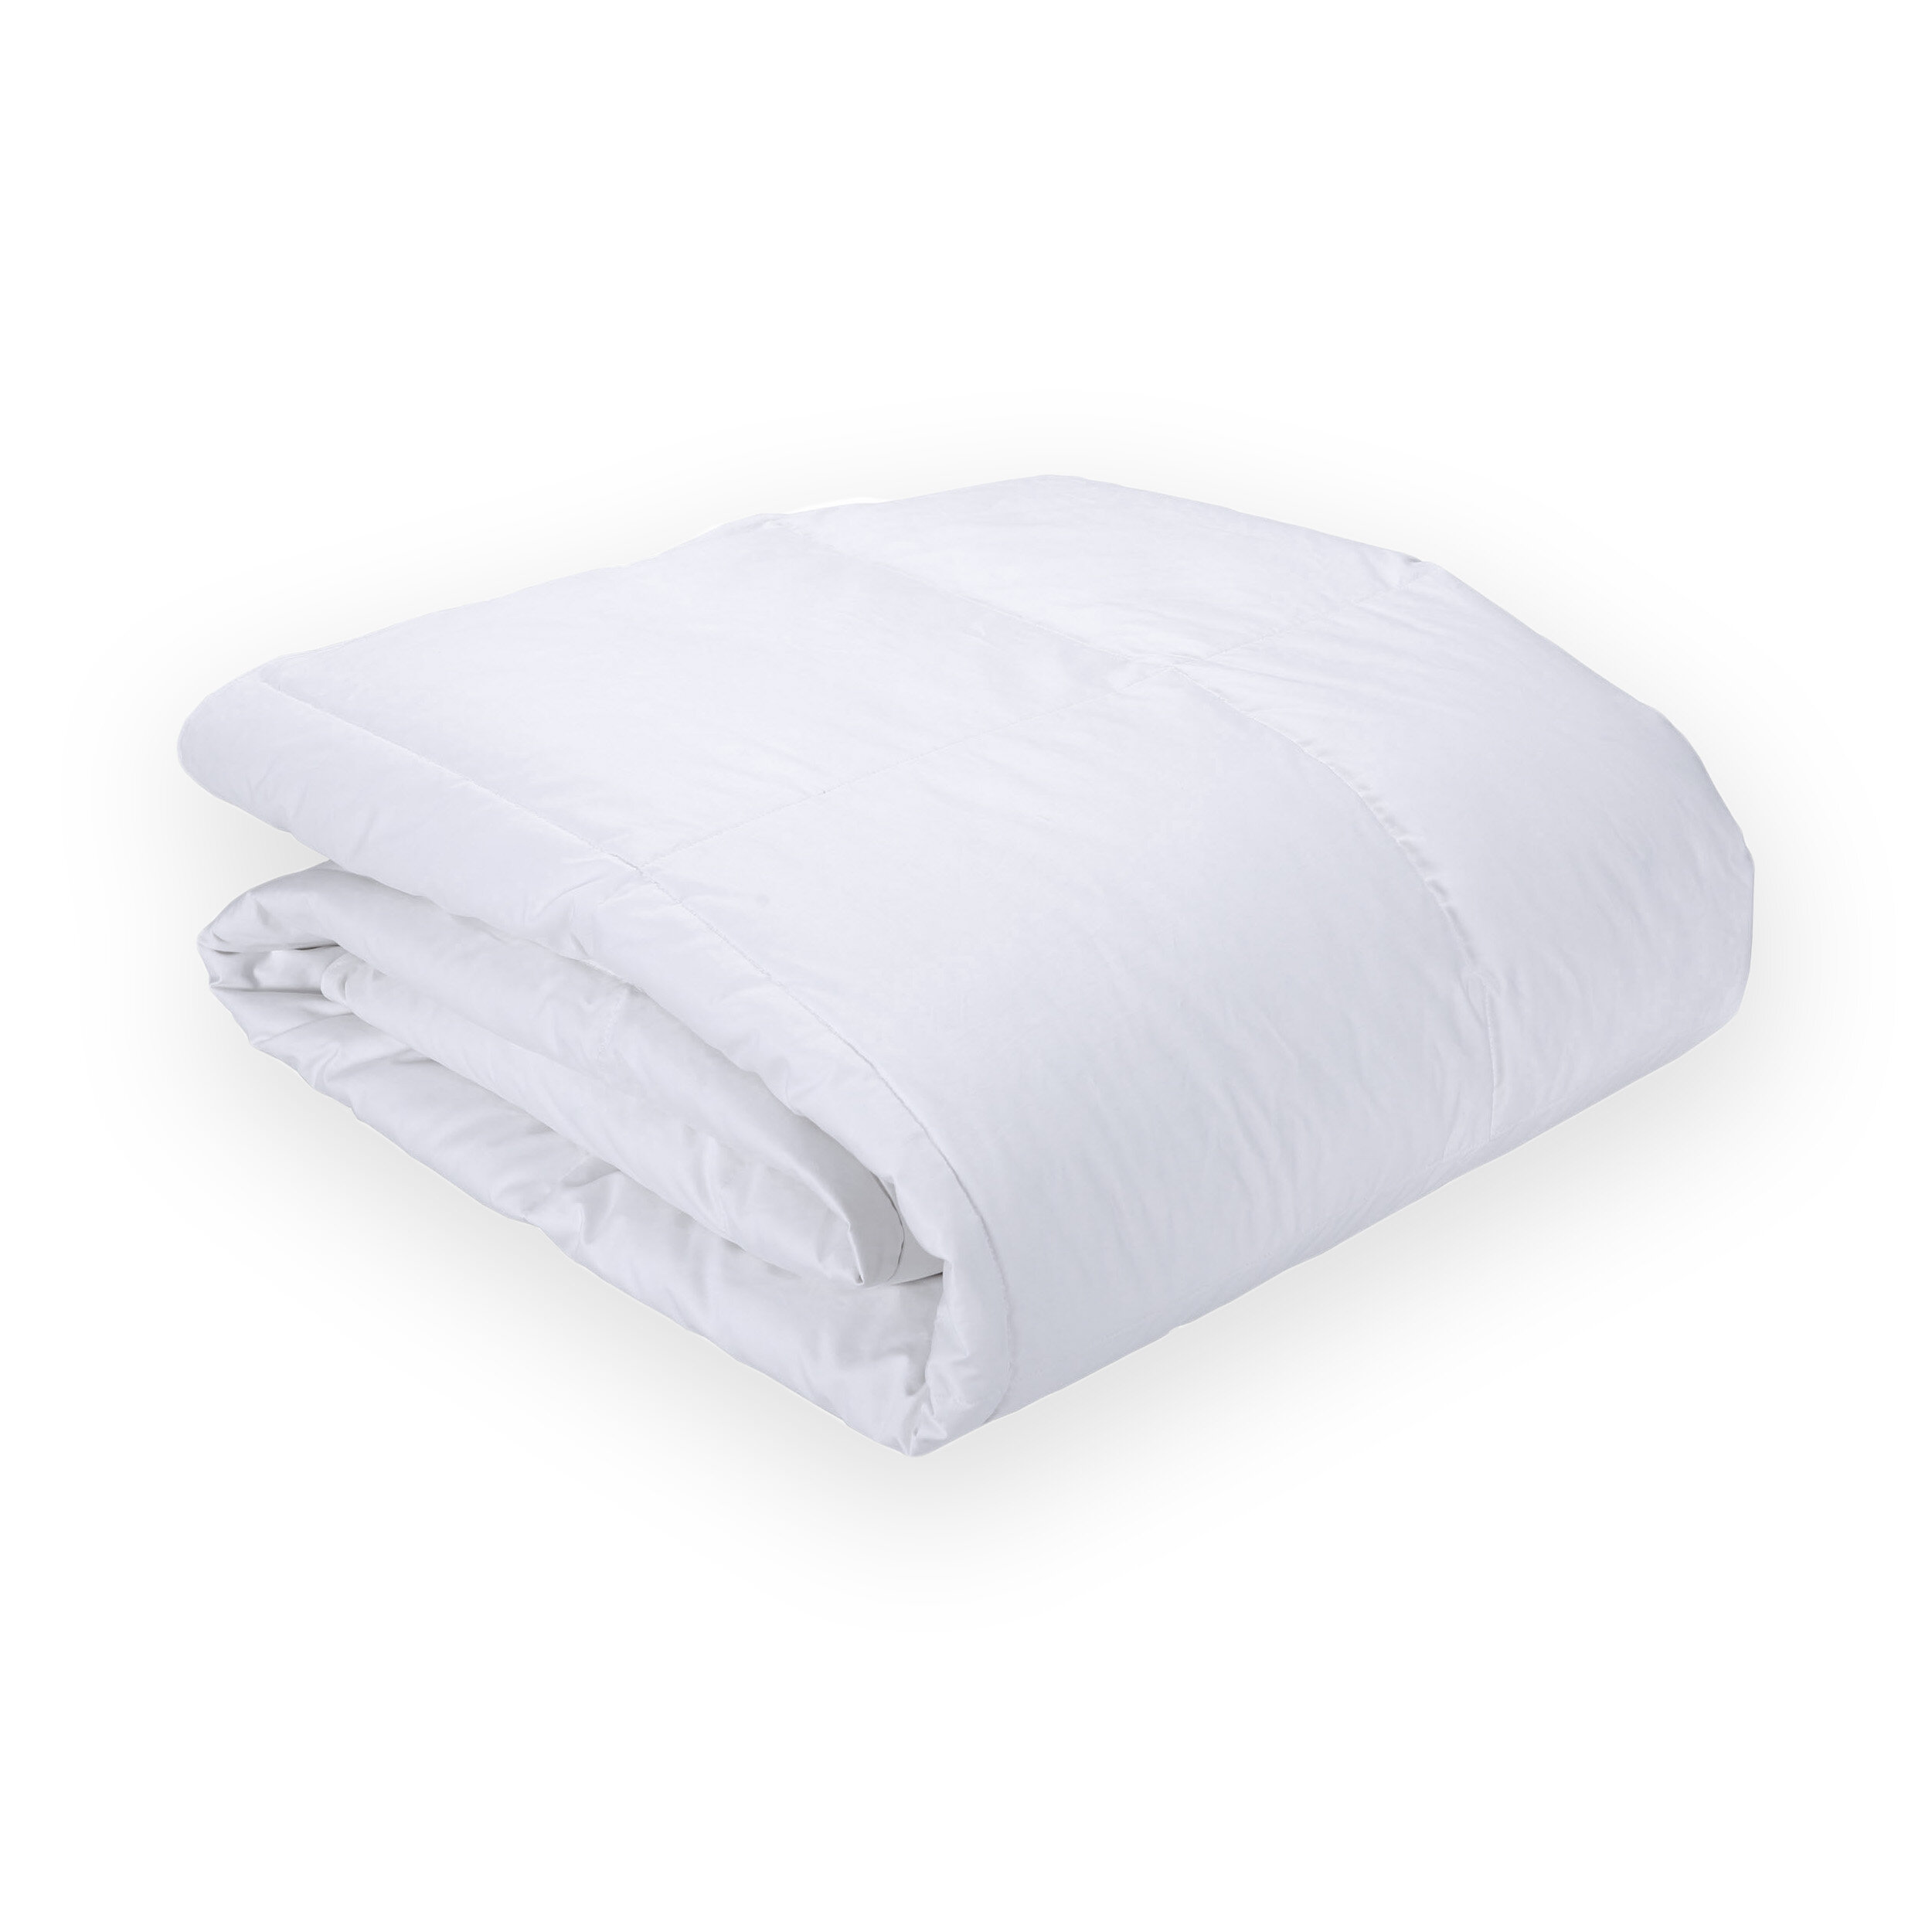 buy pages a yellow topdown comforter duvet white canopy how crane bedding to comforters covers leopard inserts and down fitting sizes